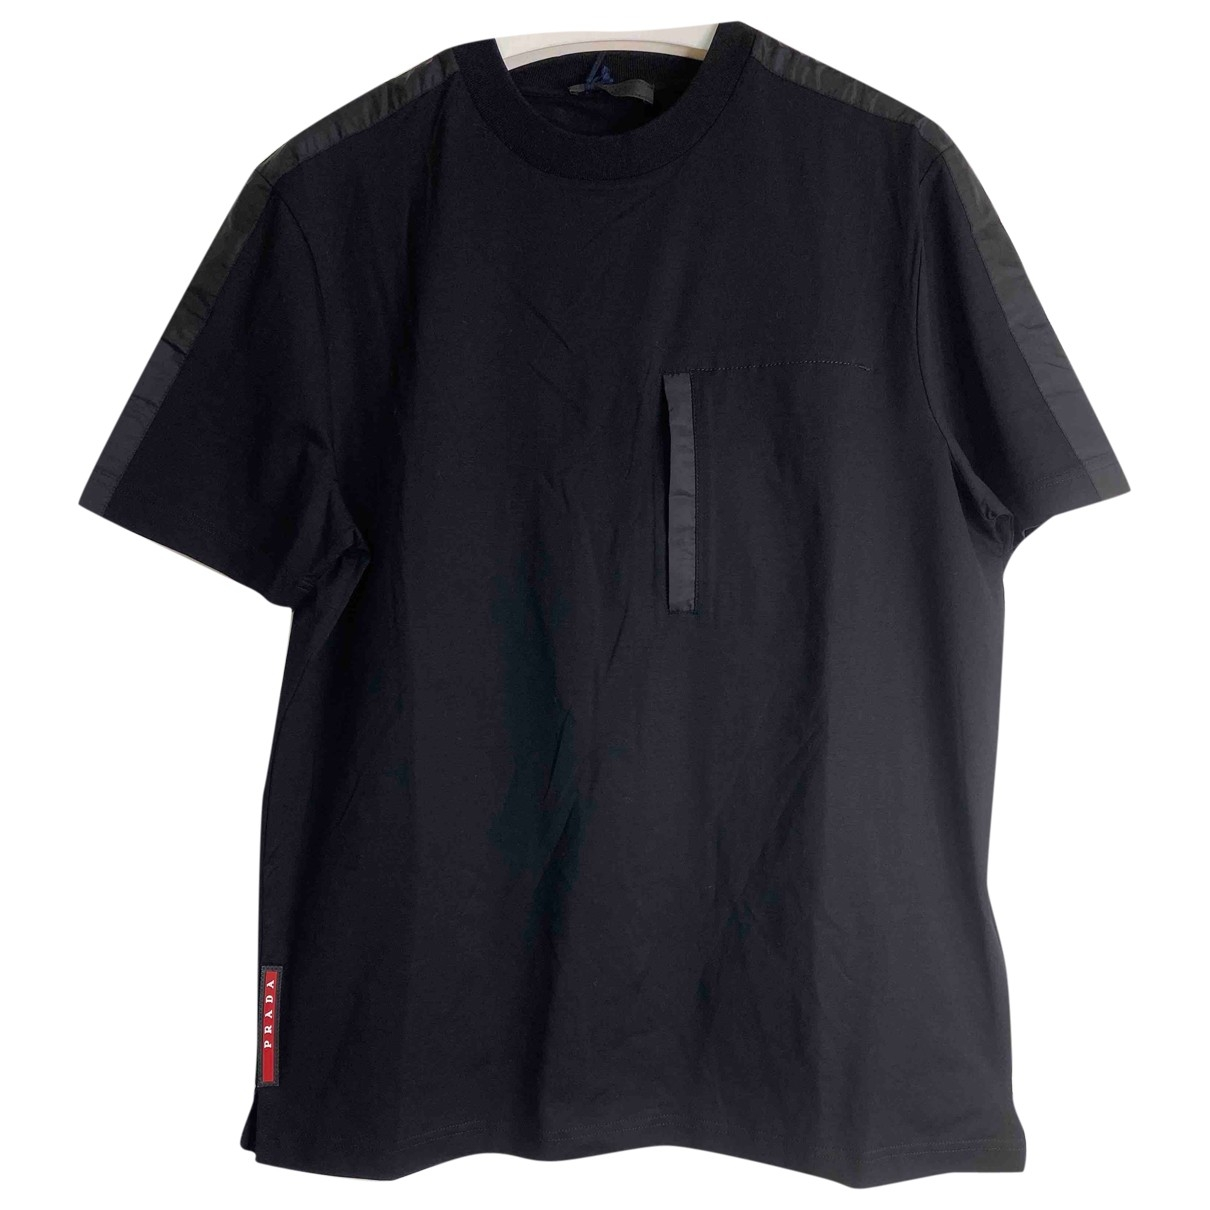 Prada \N Black Cotton T-shirts for Men XS International